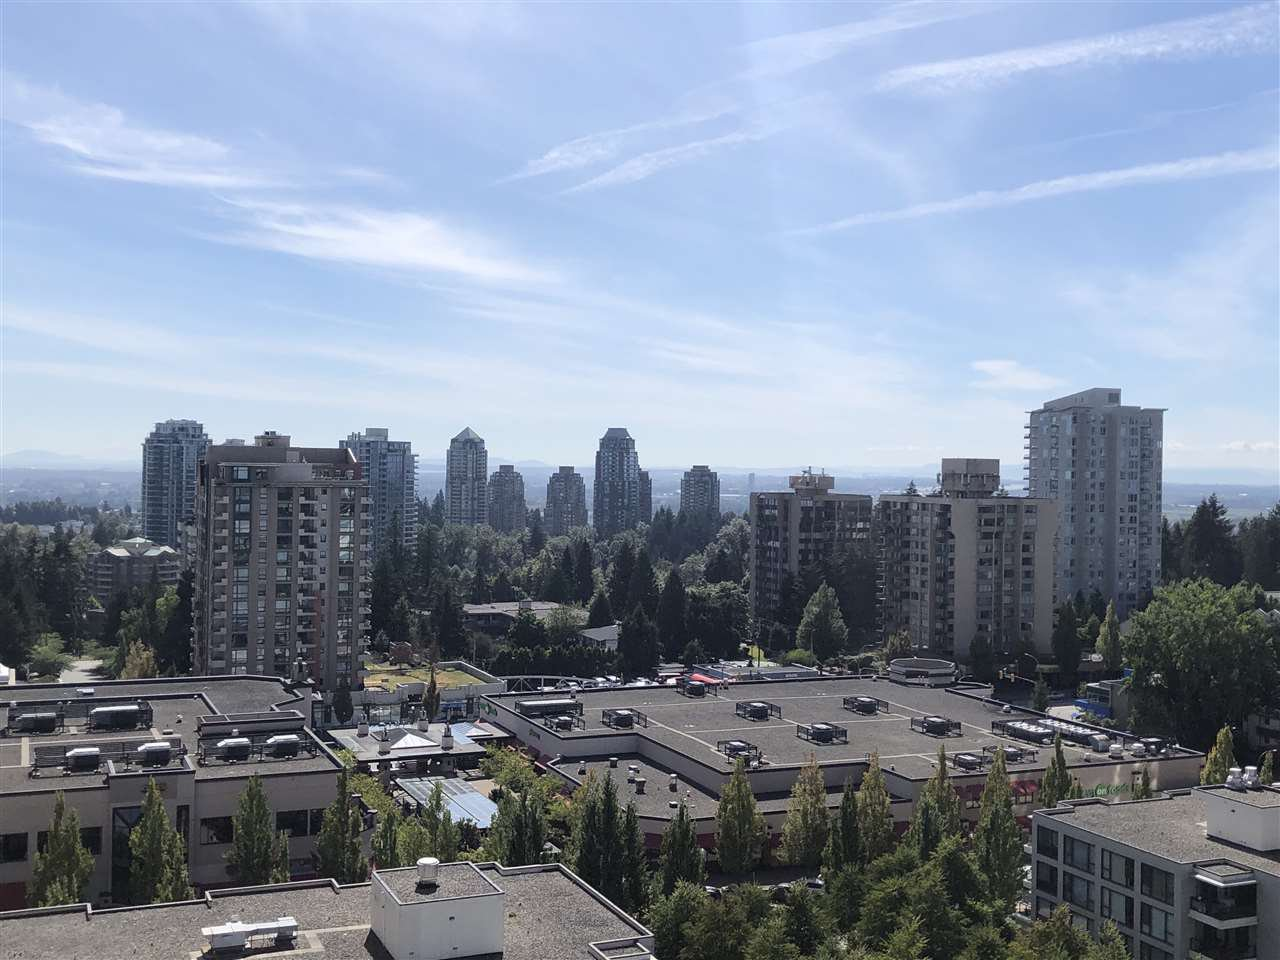 Main Photo: 1601 7178 COLLIER STREET in Burnaby: Highgate Condo for sale (Burnaby South)  : MLS®# R2492179